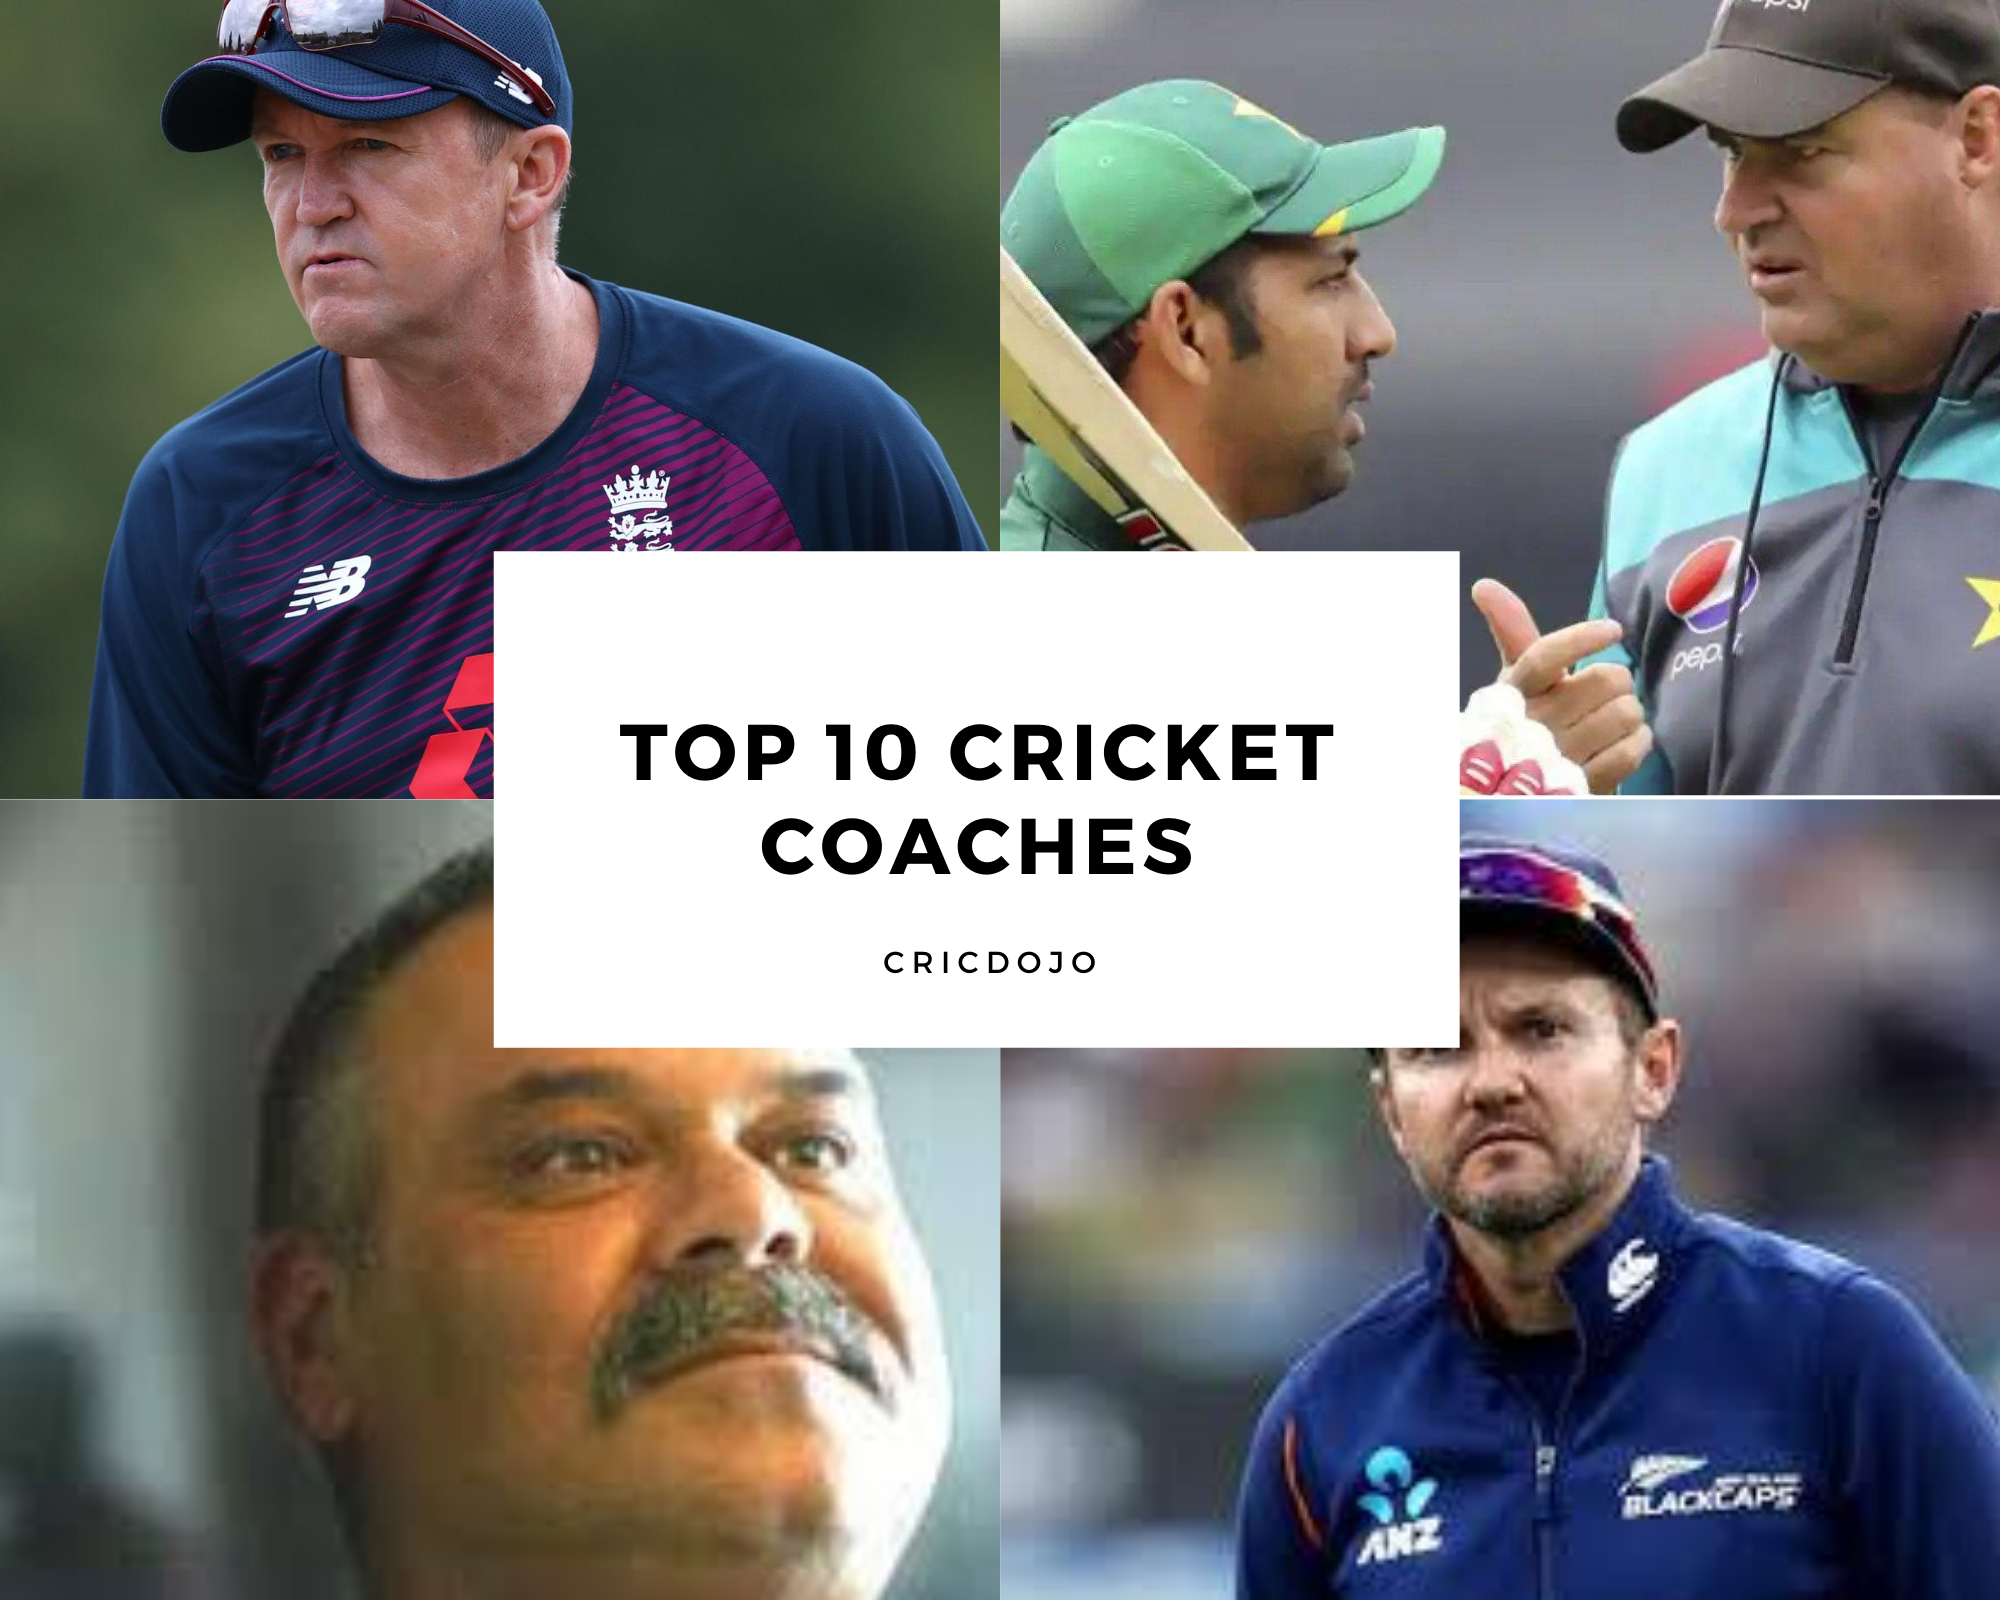 Top Cricket Coaches